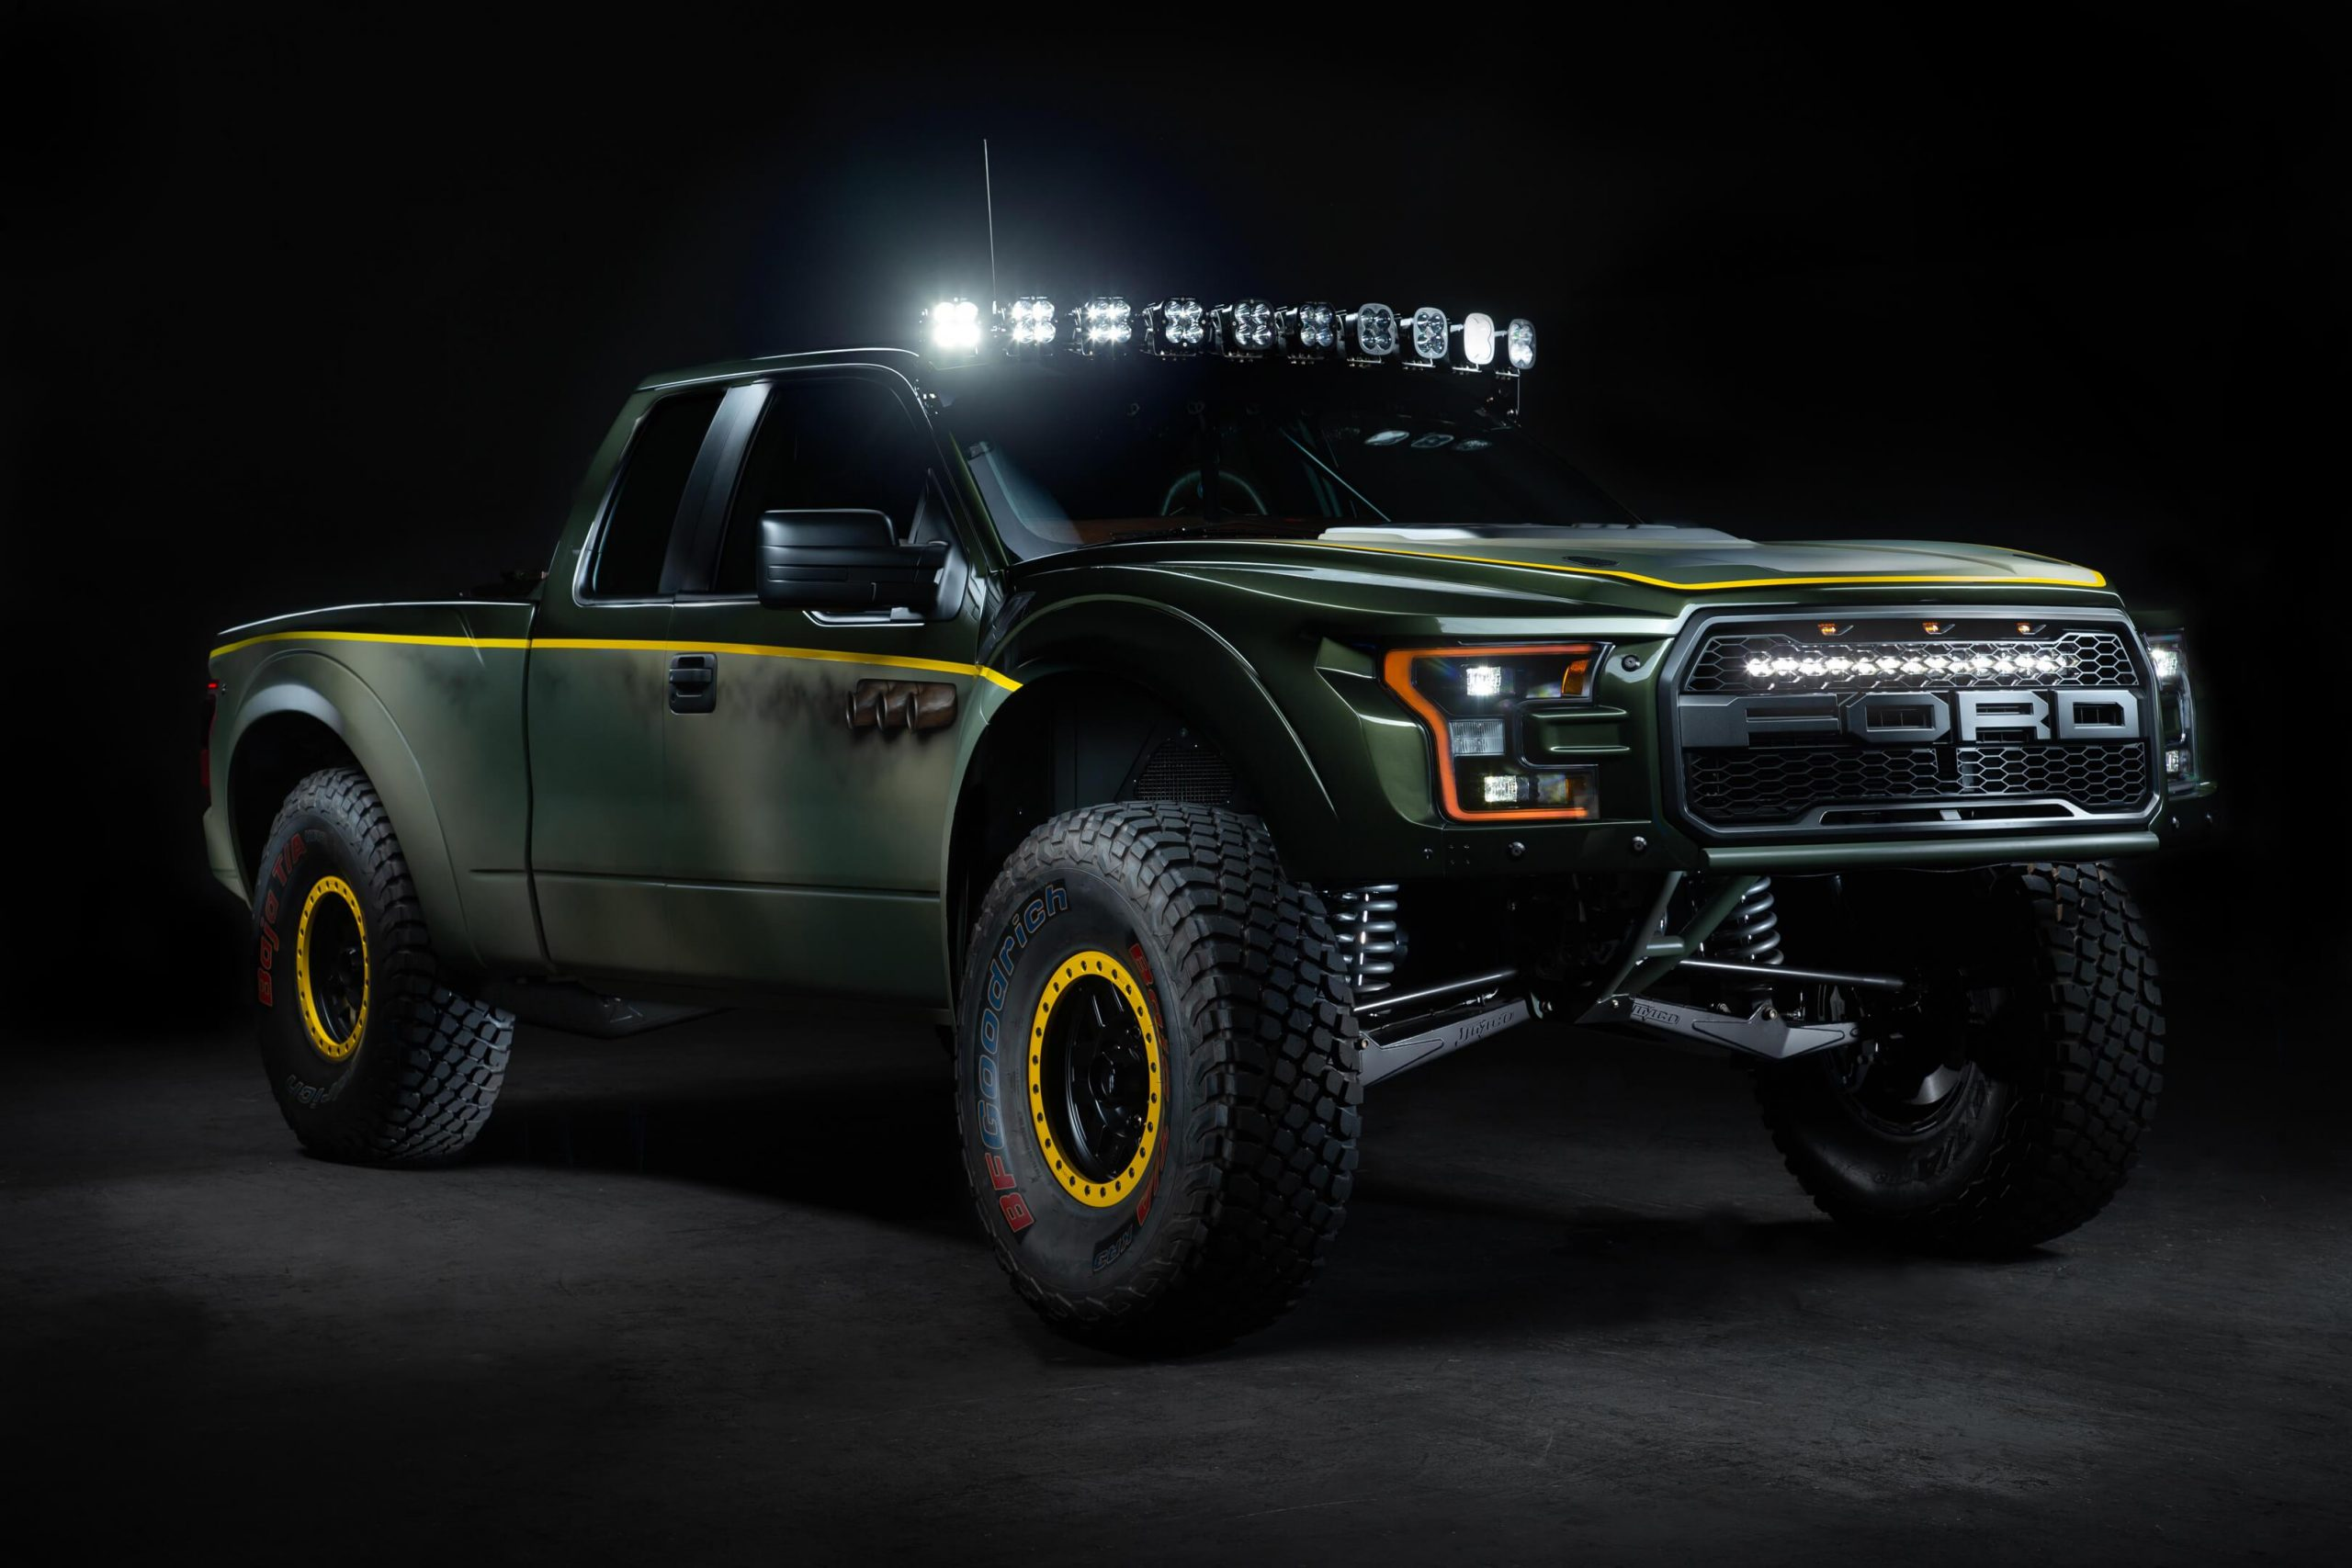 The Jim-co Racing Ford F-150 Raptor is a great car